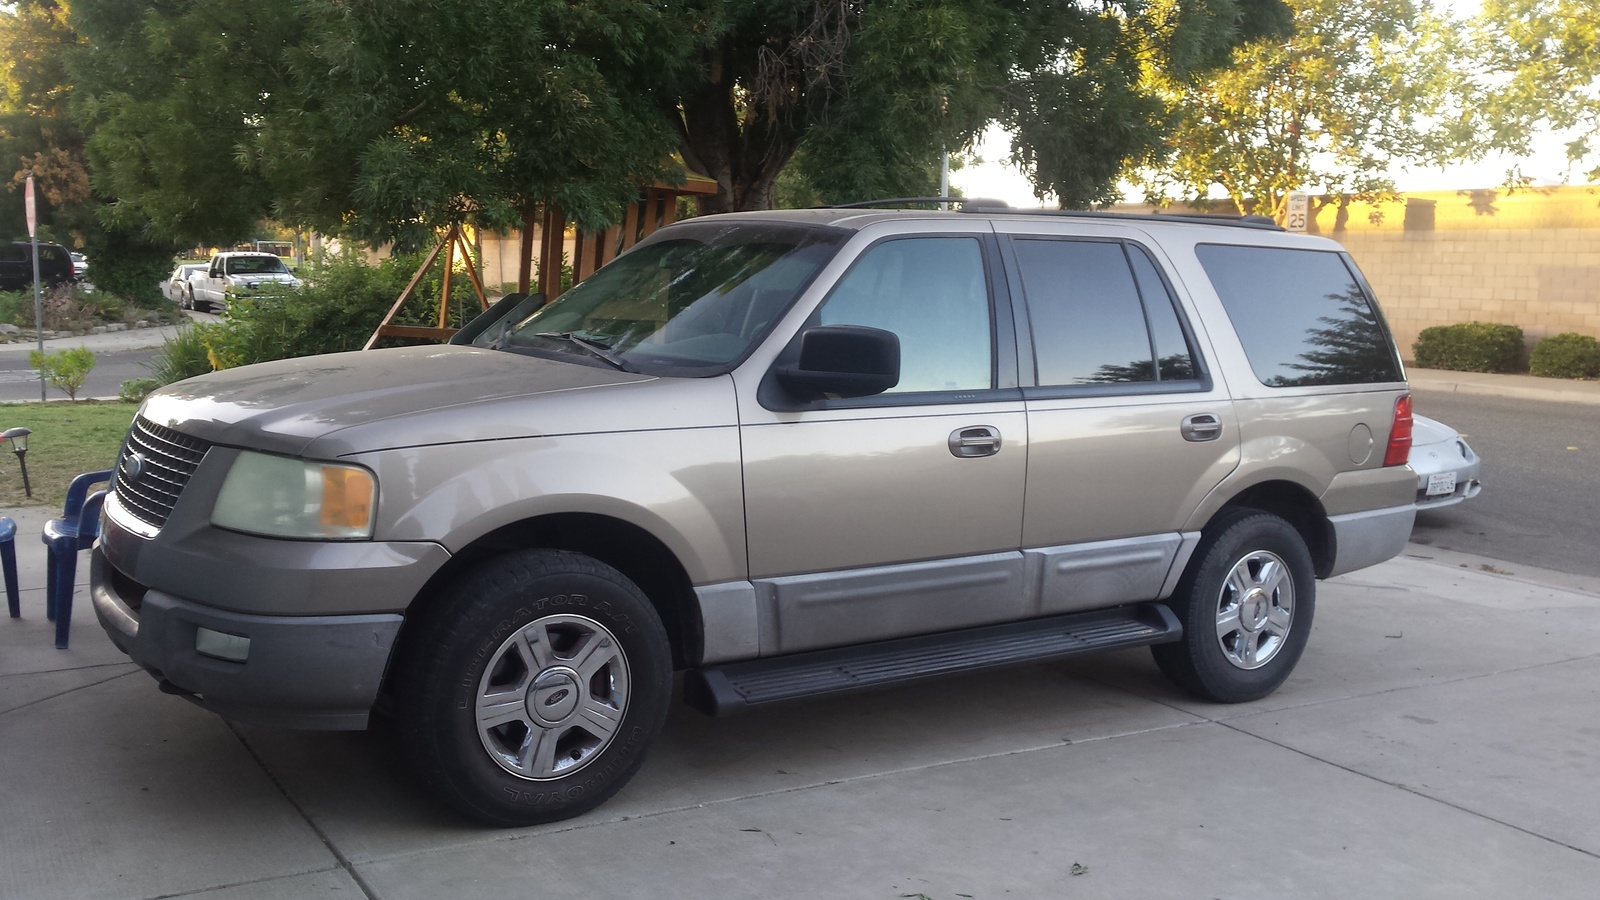 Hello i have a 2003 ford expedition 4x4 that has lean leaks on bank 1 and  bank 2 codes p0171 and p0174, what are the most common issues?